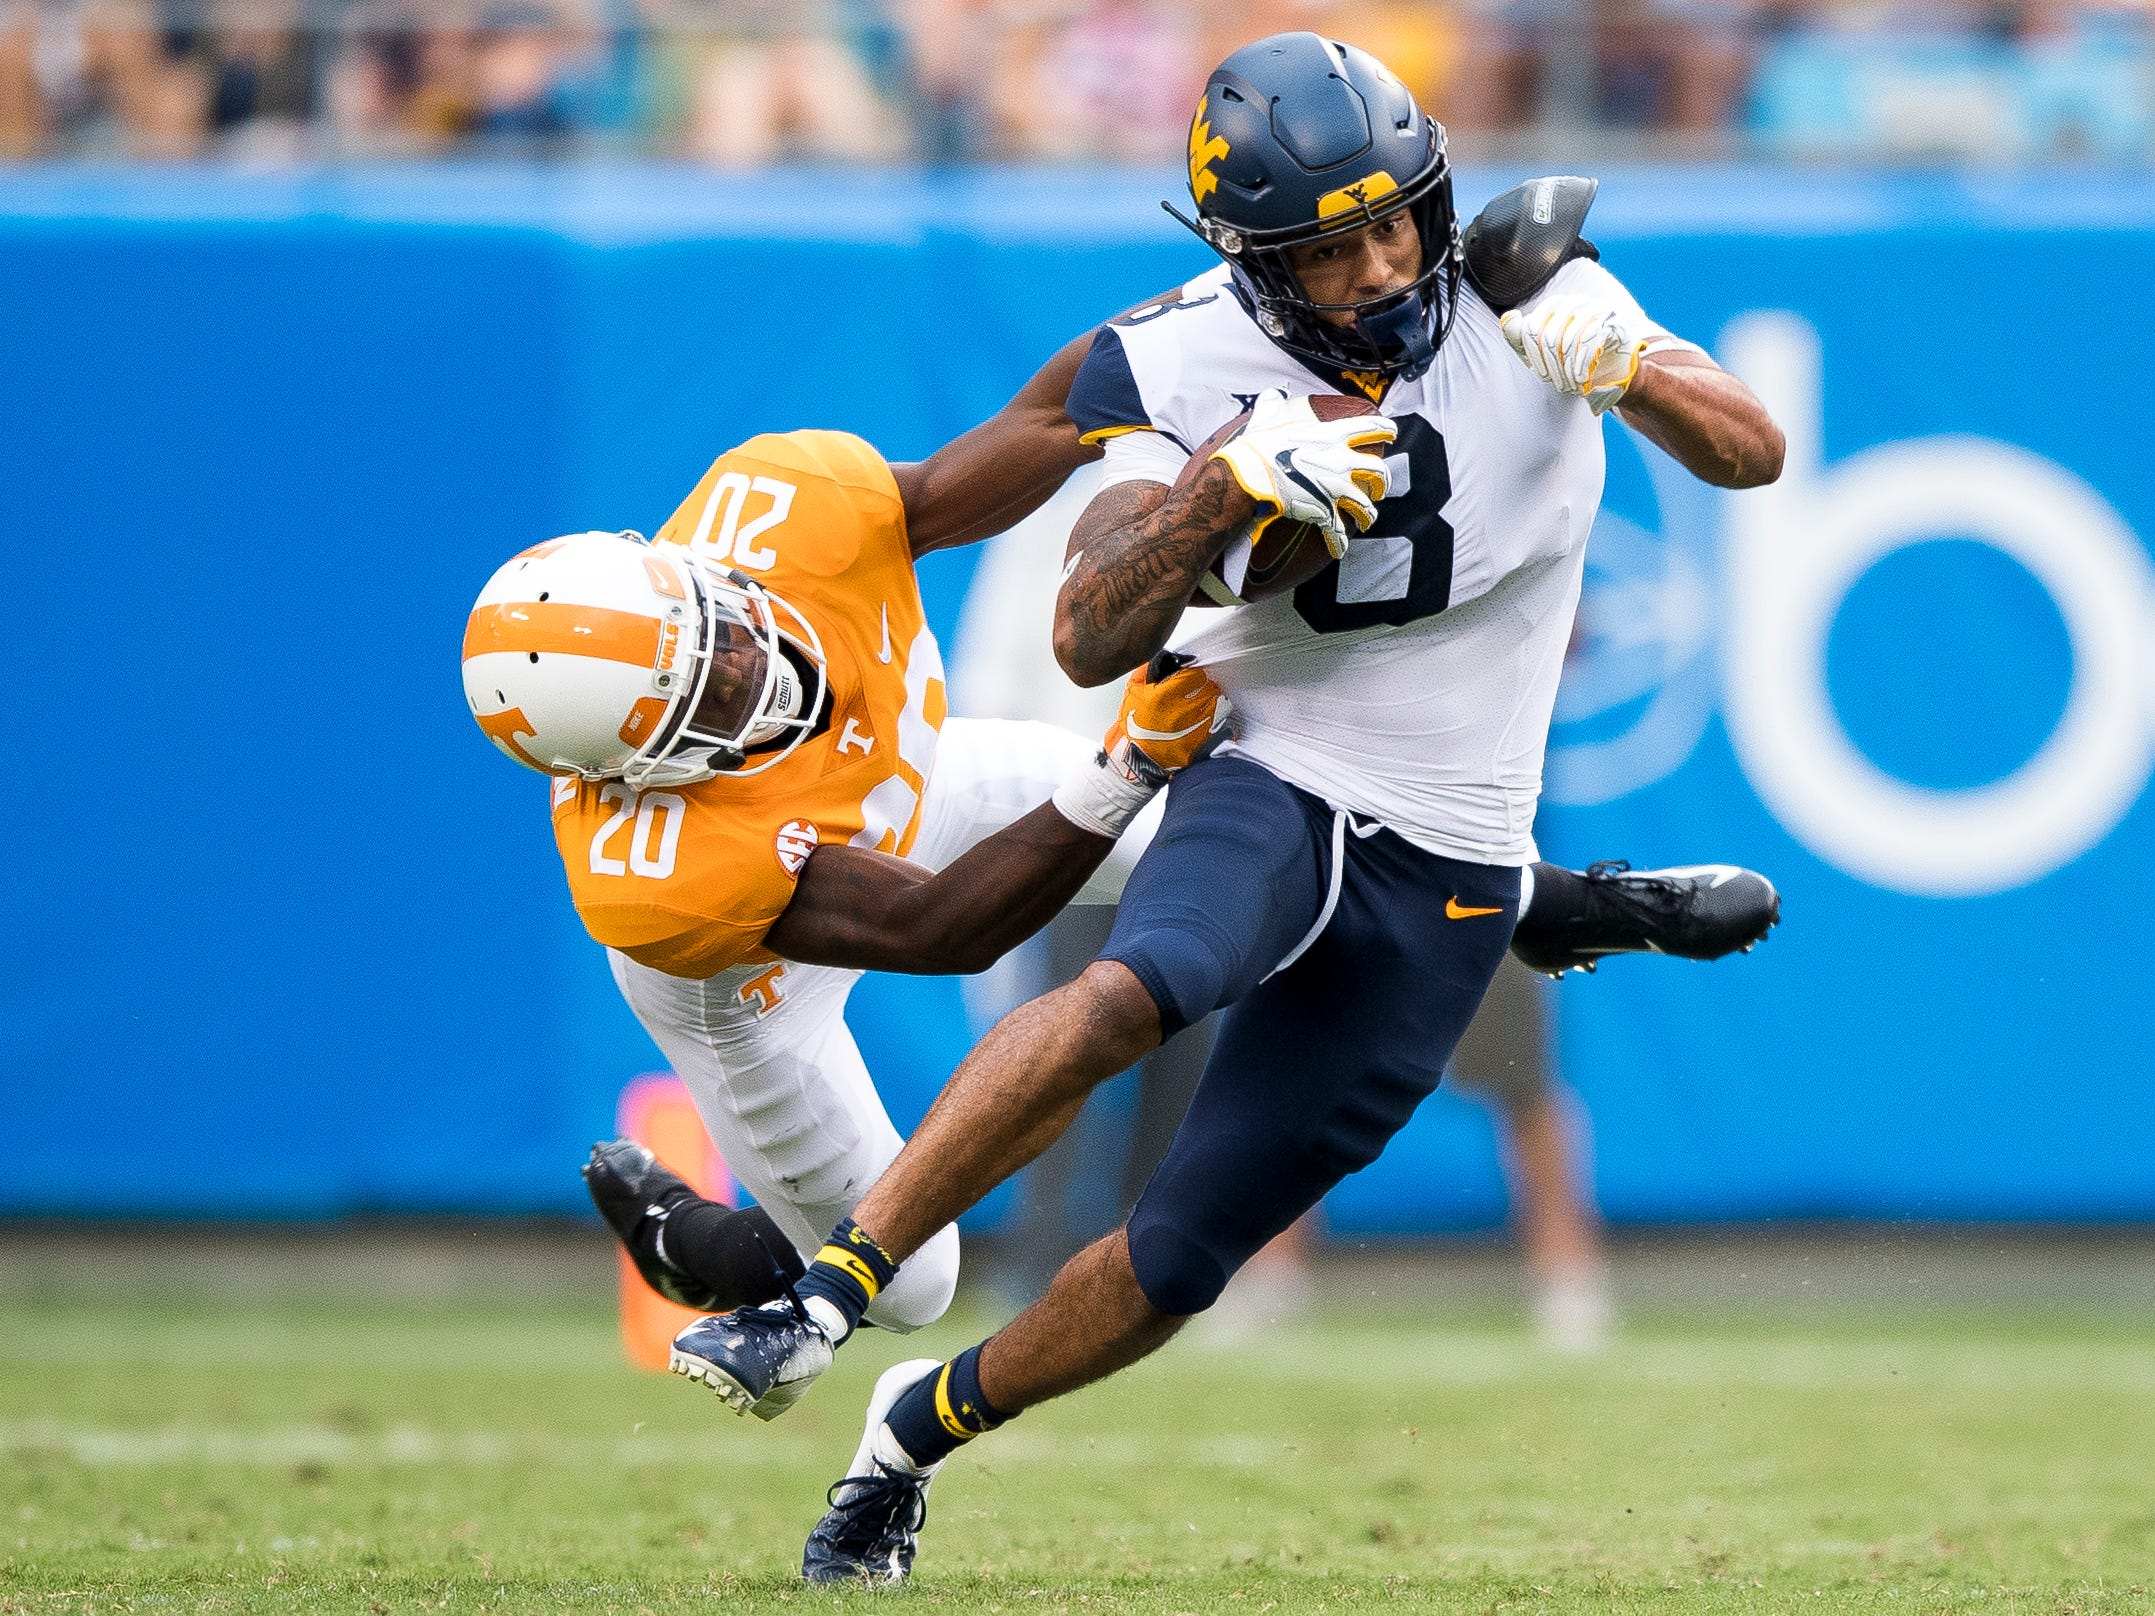 West Virginia wide receiver Marcus Simms (8) escapes a tackle by Tennessee defensive back Bryce Thompson (20) during the Tennessee Volunteers' game against West Virginia in the Belk College Kickoff at Bank of America Stadium in Charlotte, N.C., on Saturday, Sept. 1, 2018.